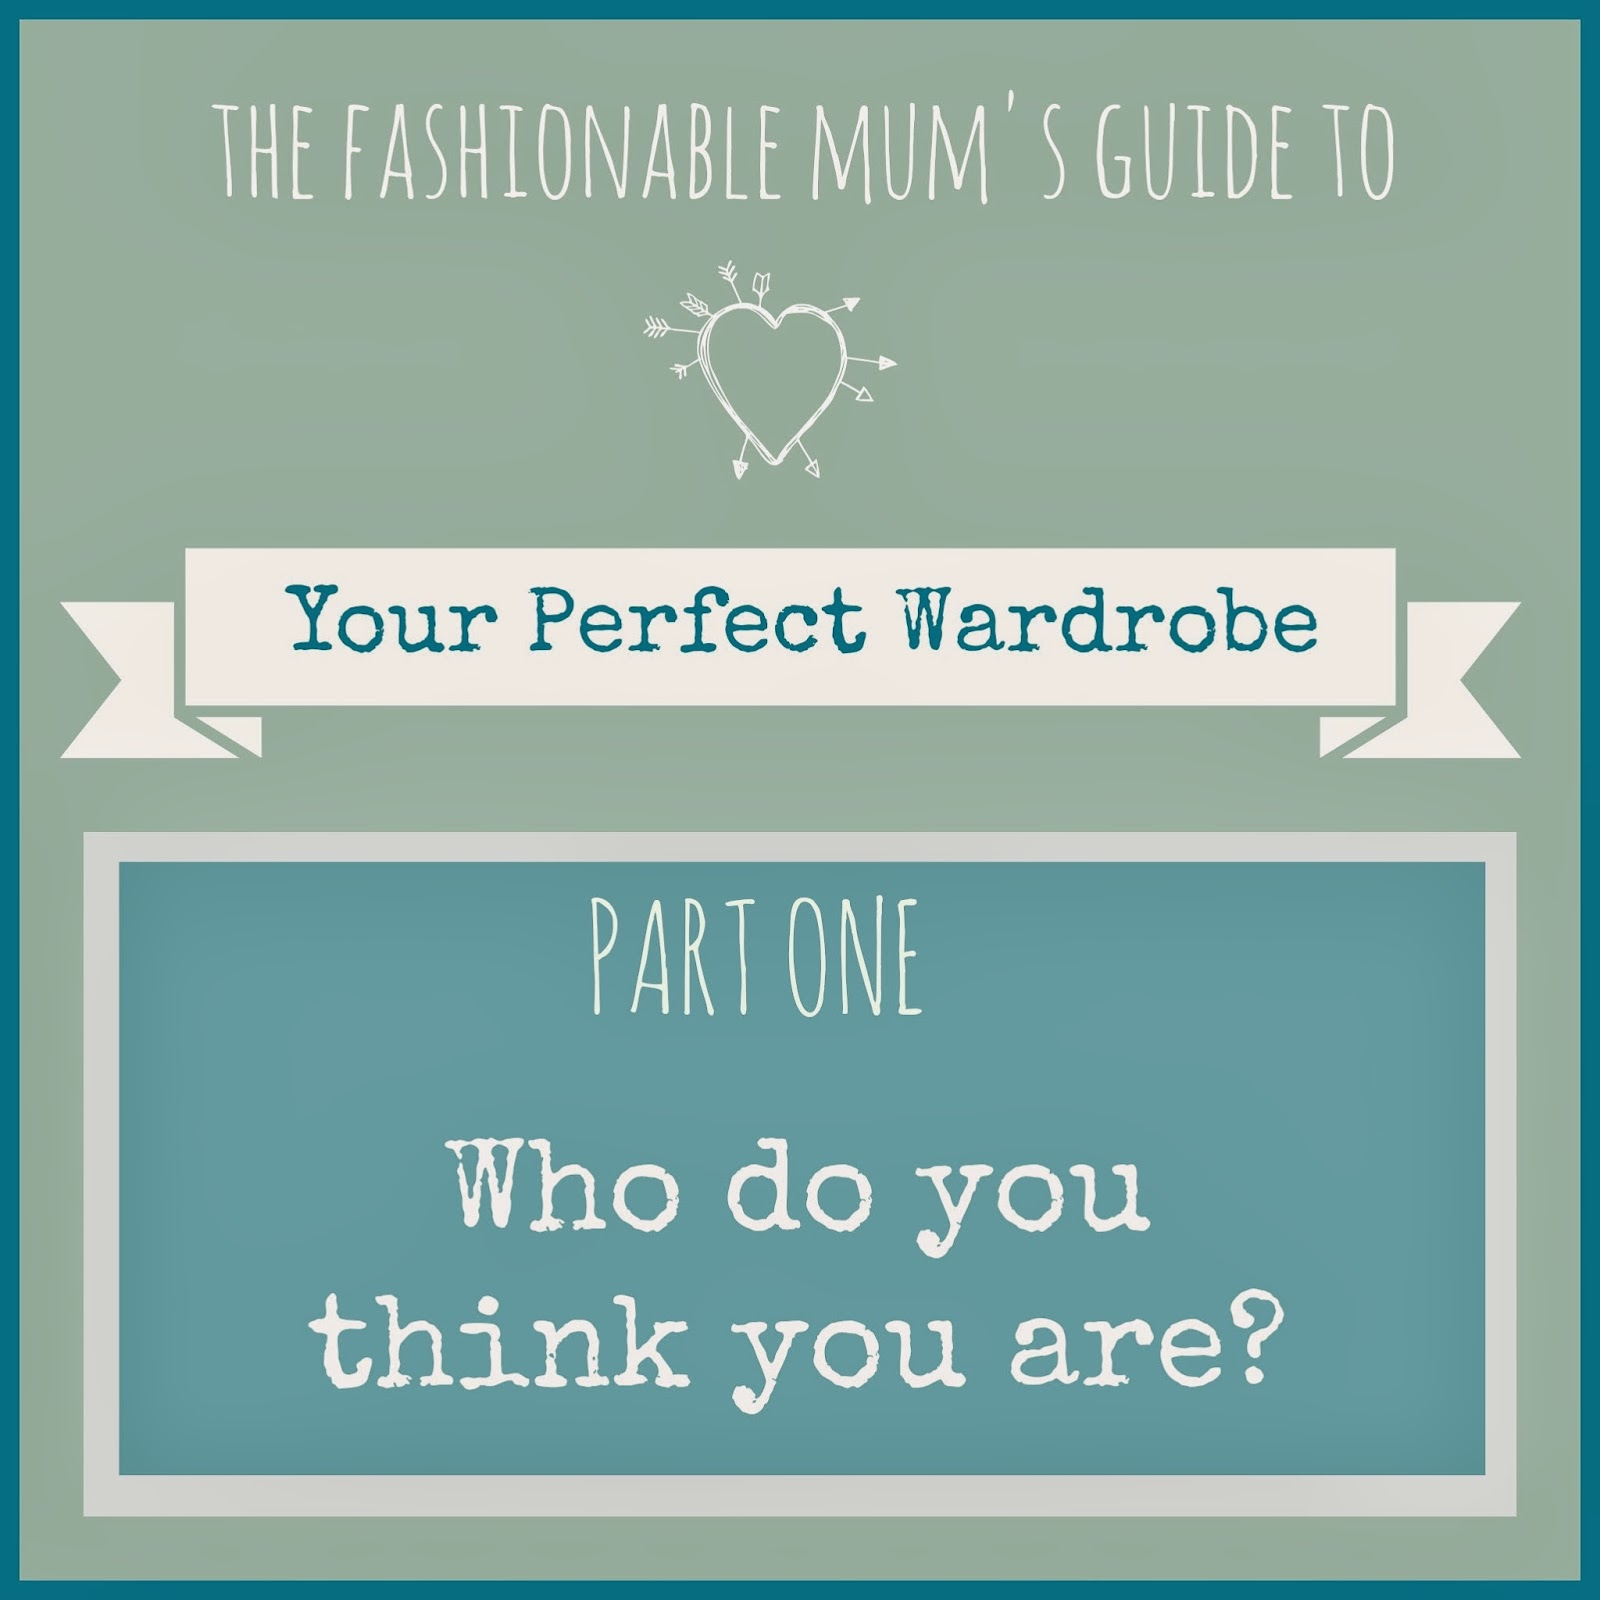 How to Create the Perfect Wardrobe - by The Fashionable Mum